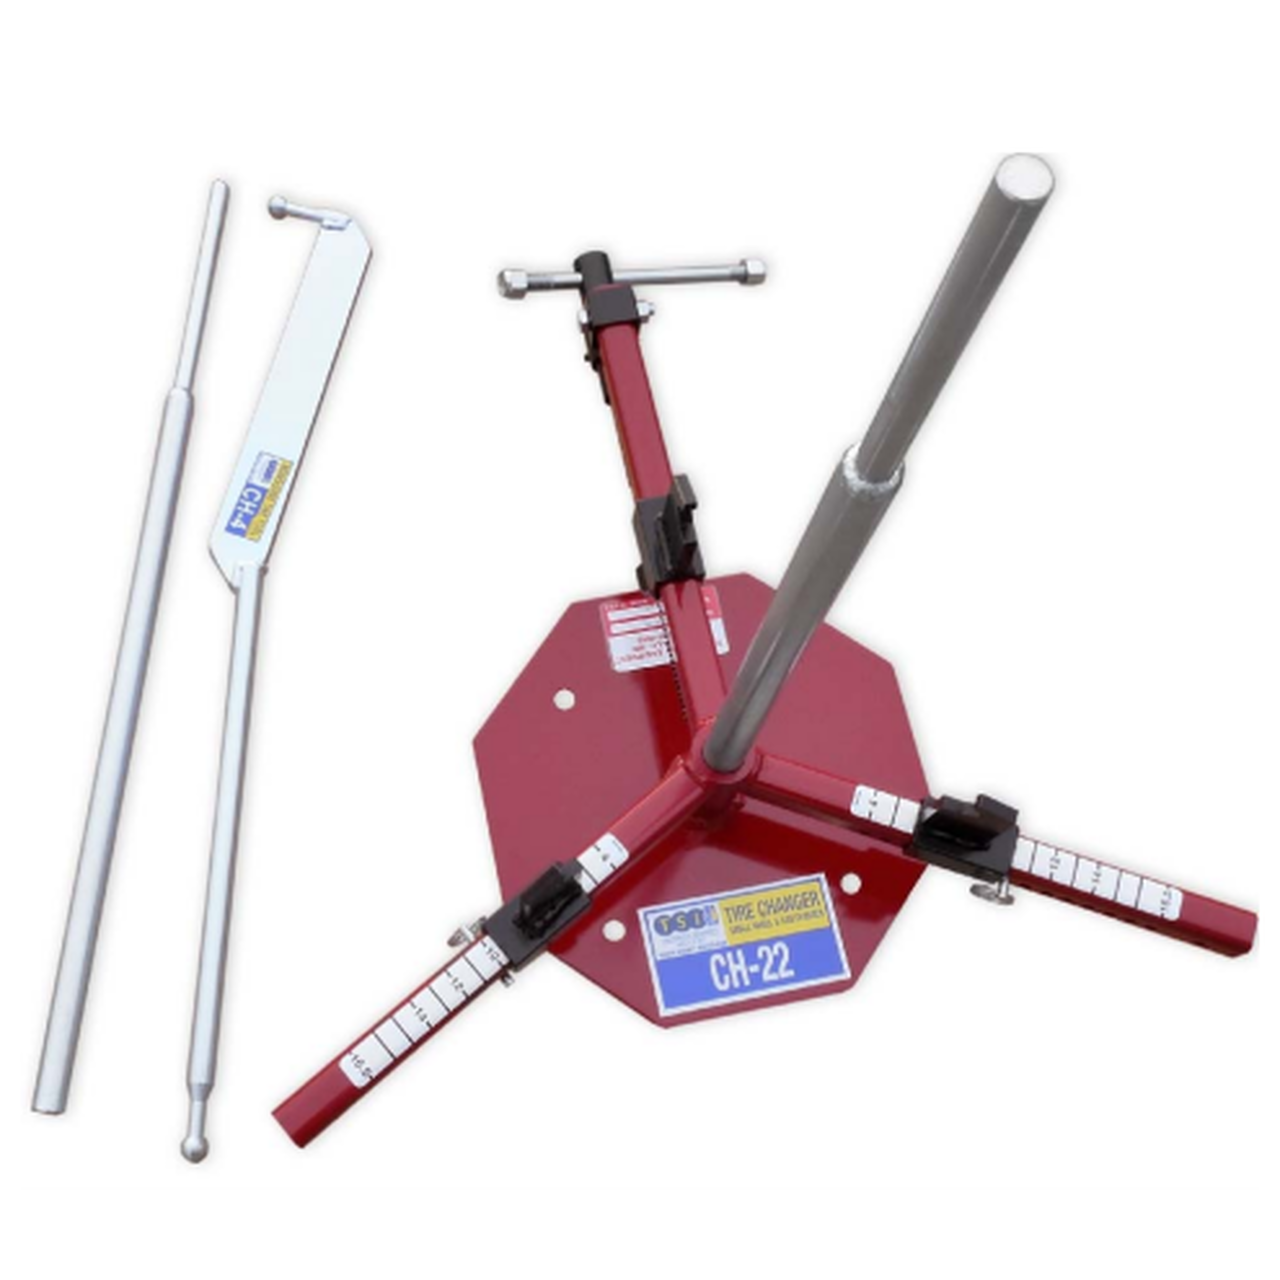 Manual tire changers